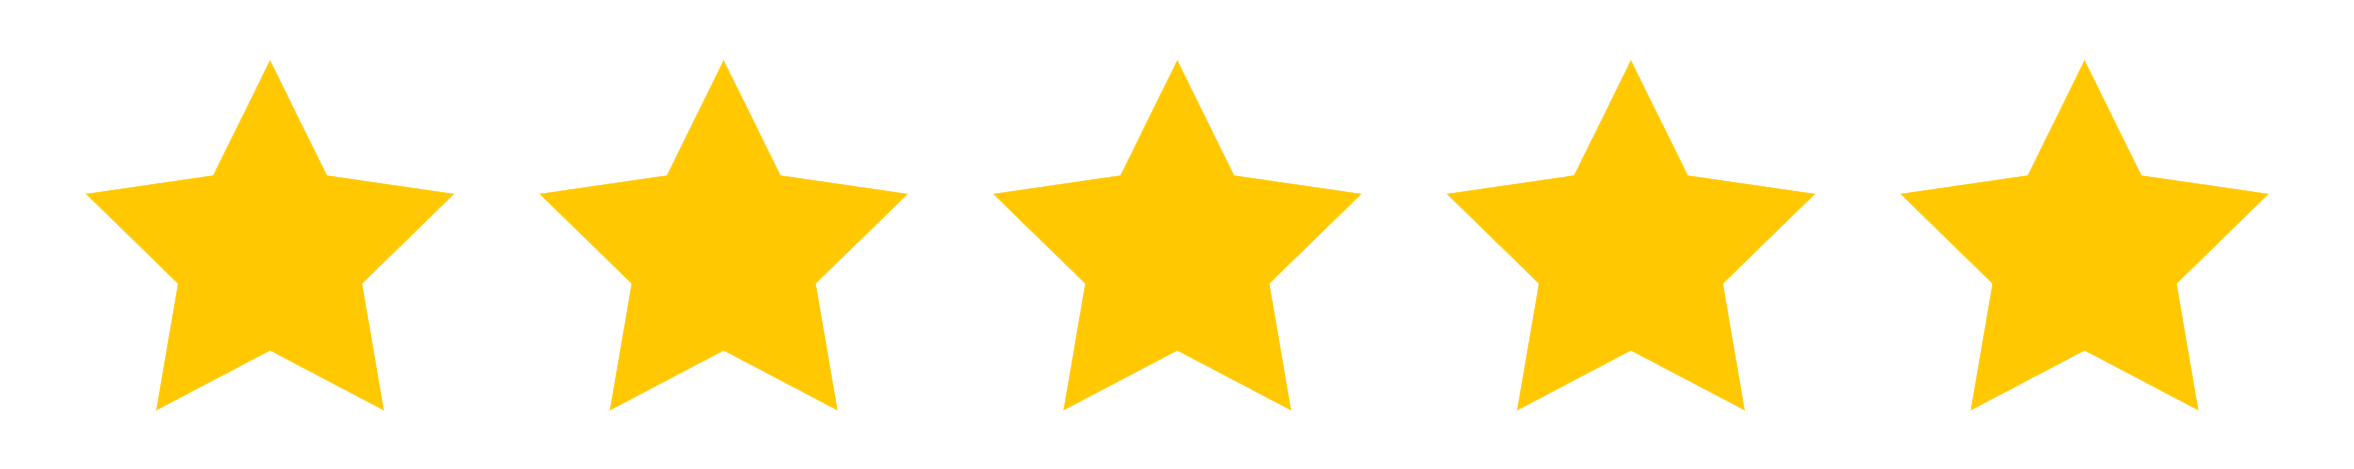 Reviews star rating from Diane C. for A-1 Self Storage in Santa Ana, California